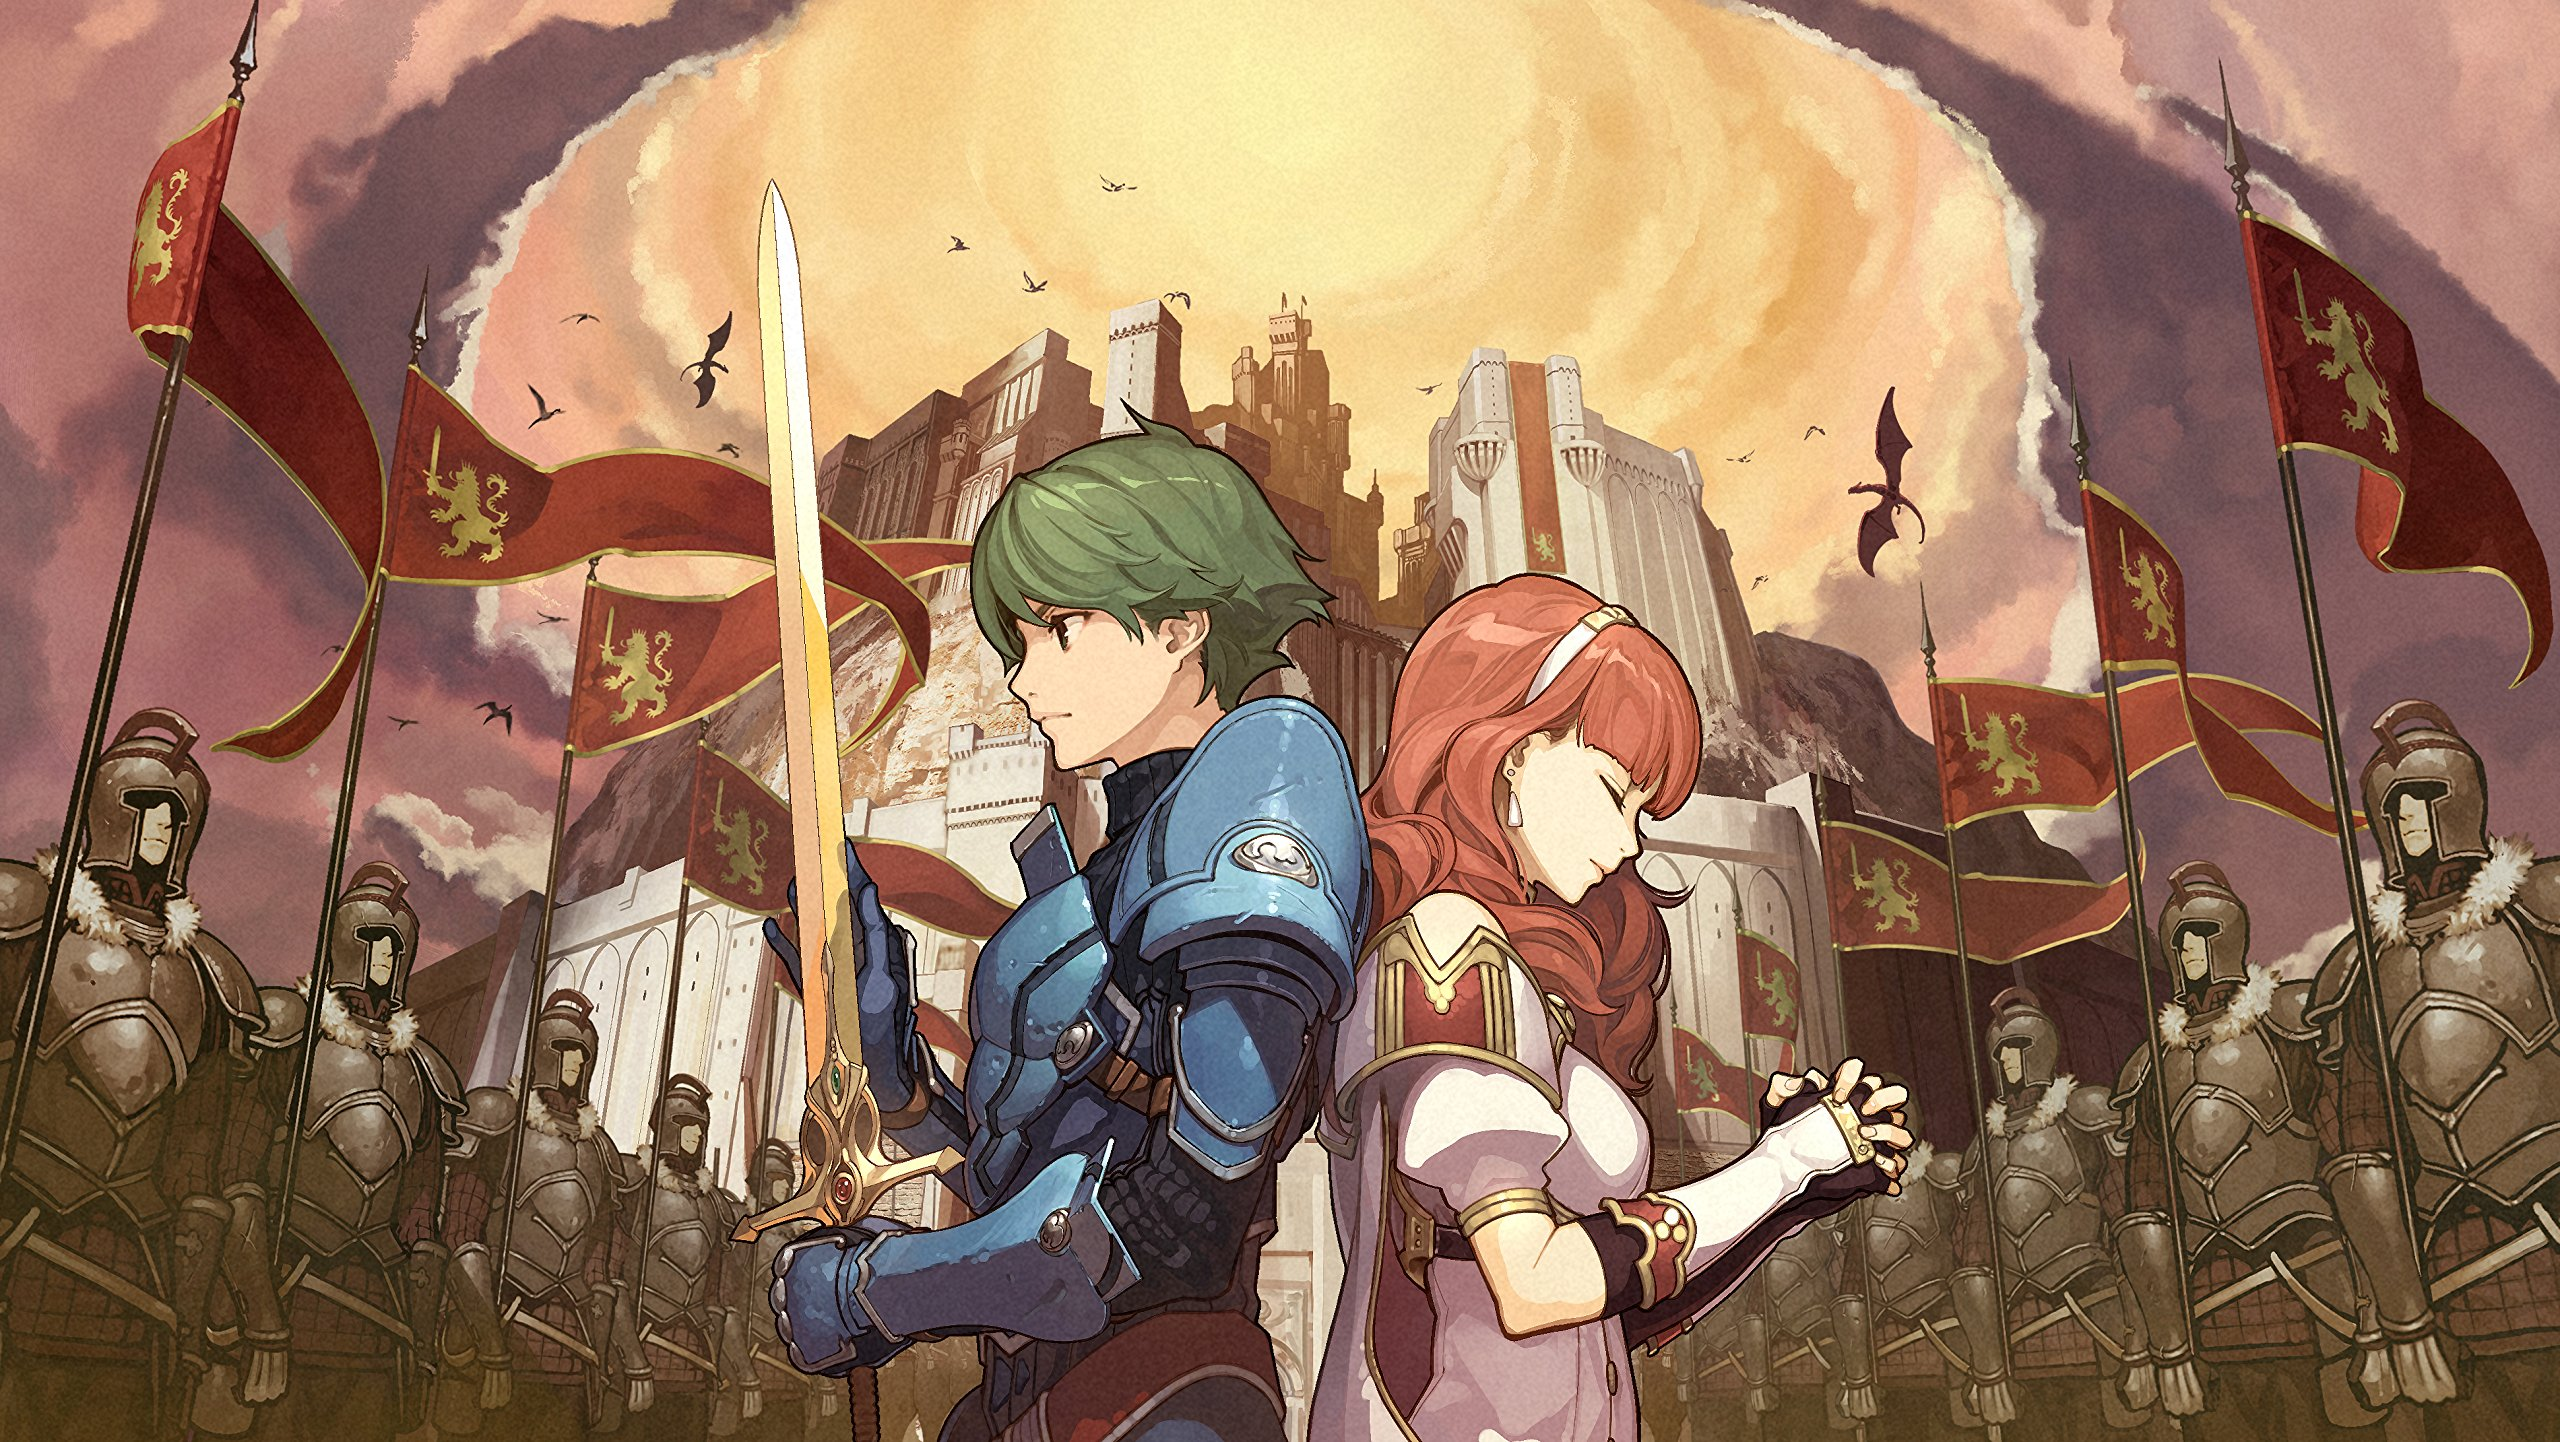 The Simplicity of Fire Emblem Echoes: Shadows of Valentia